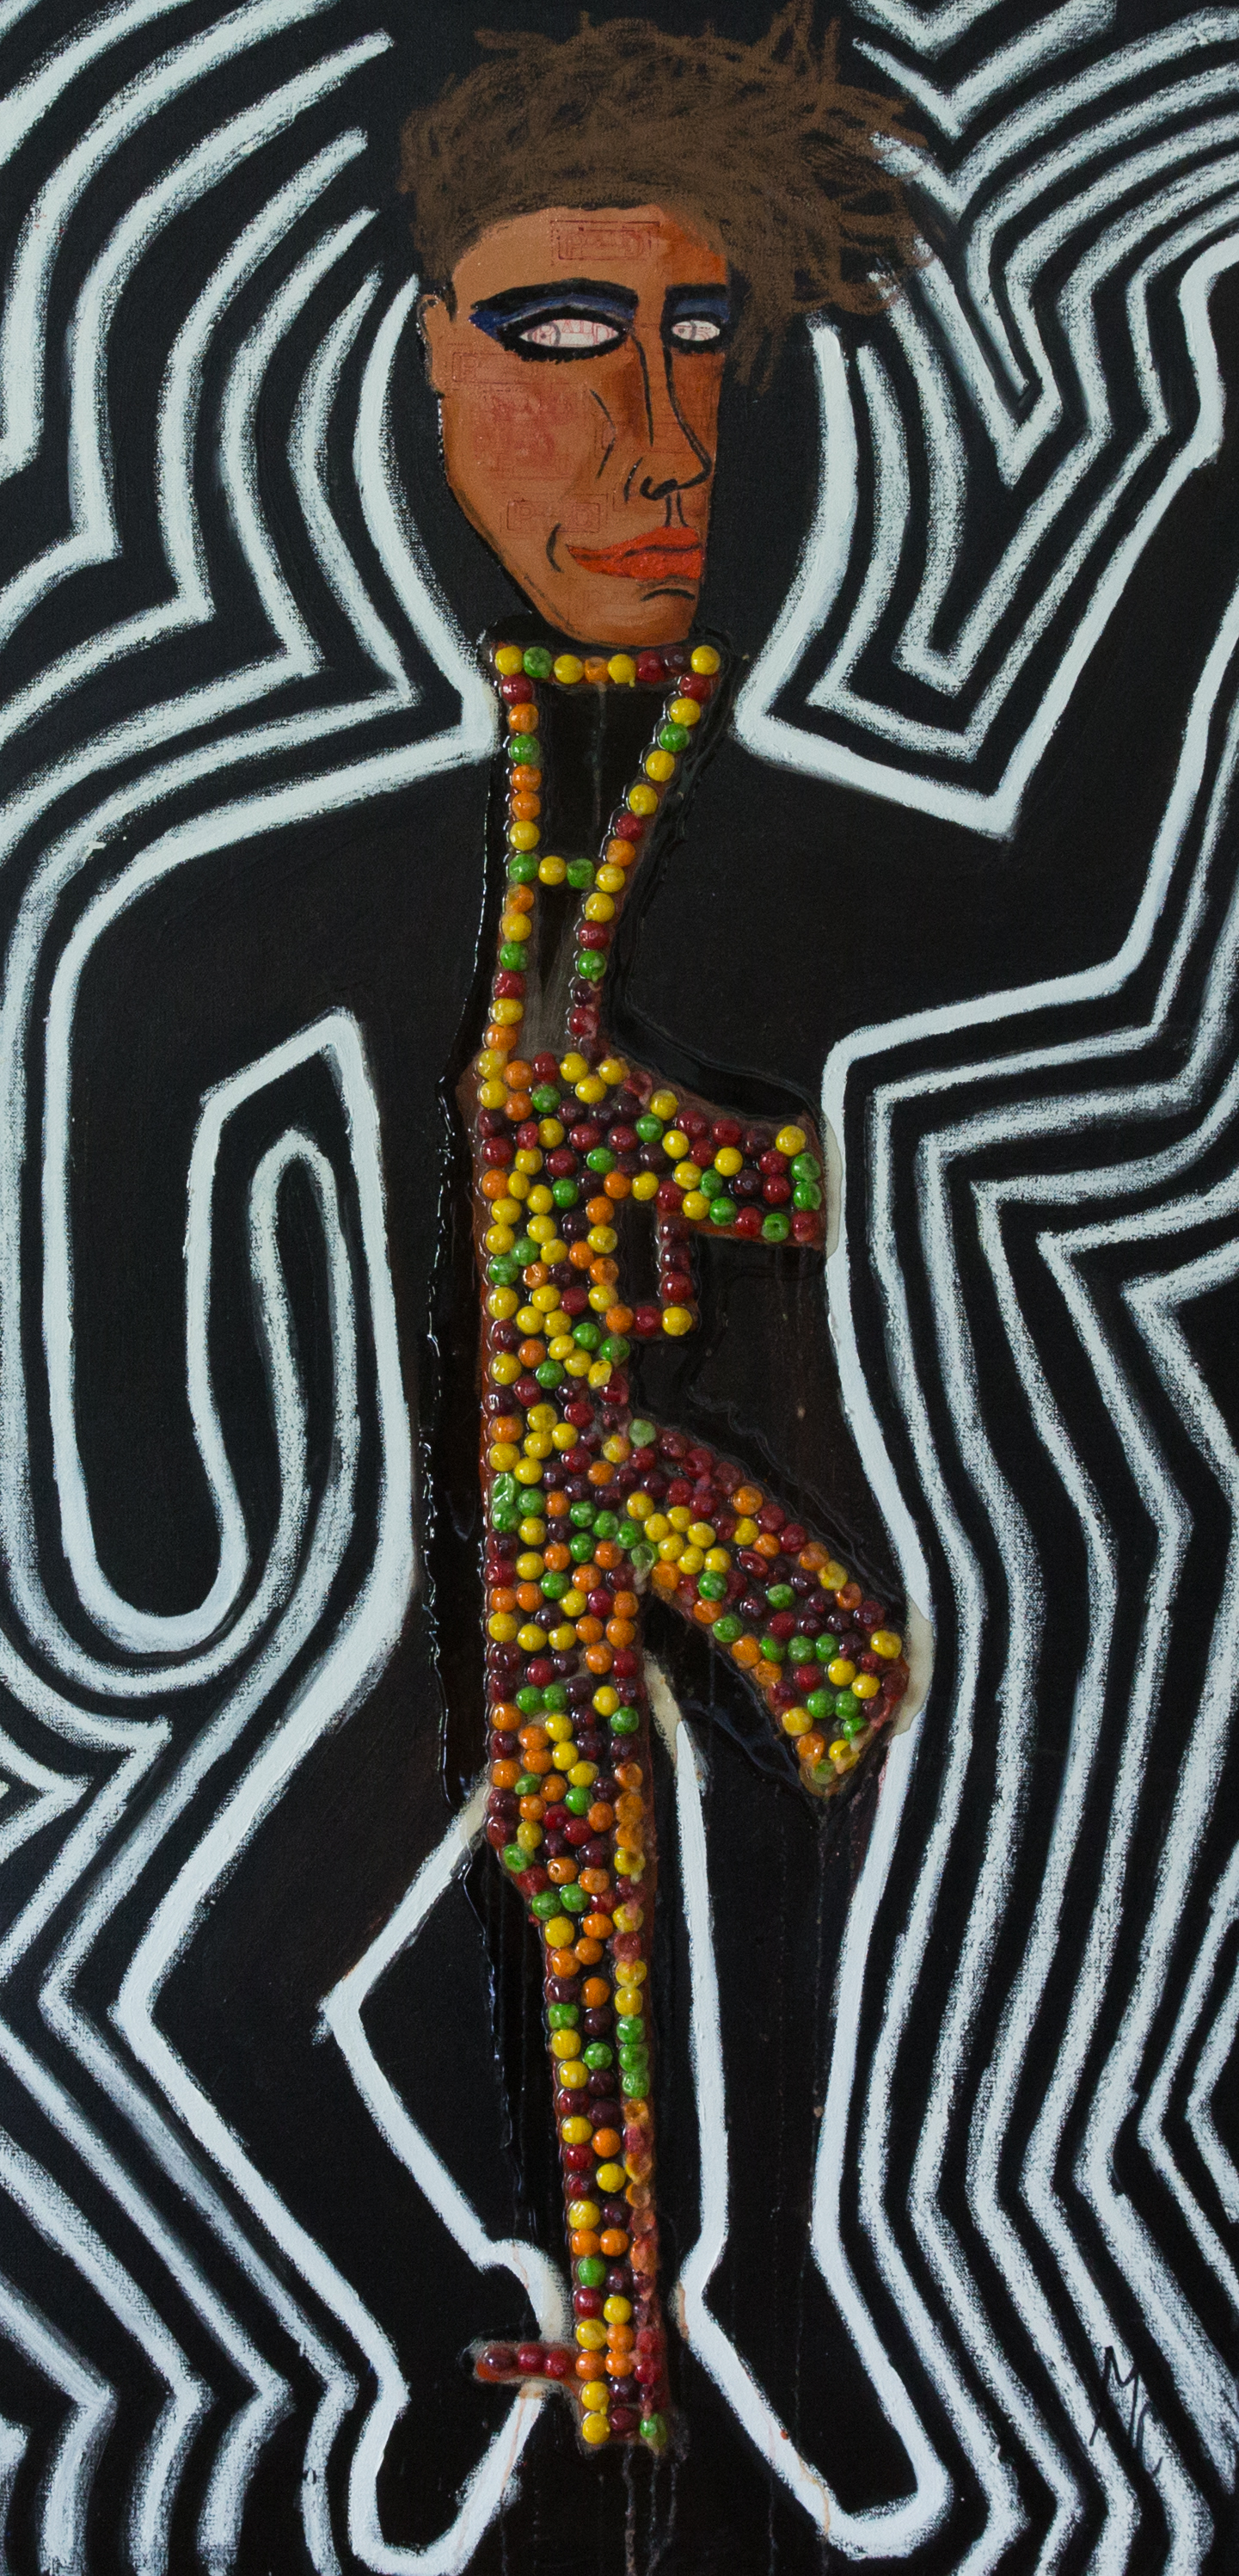 FUCK THE NRA, OIL, SKITTLES ON CANVAS, 24x84.jpg